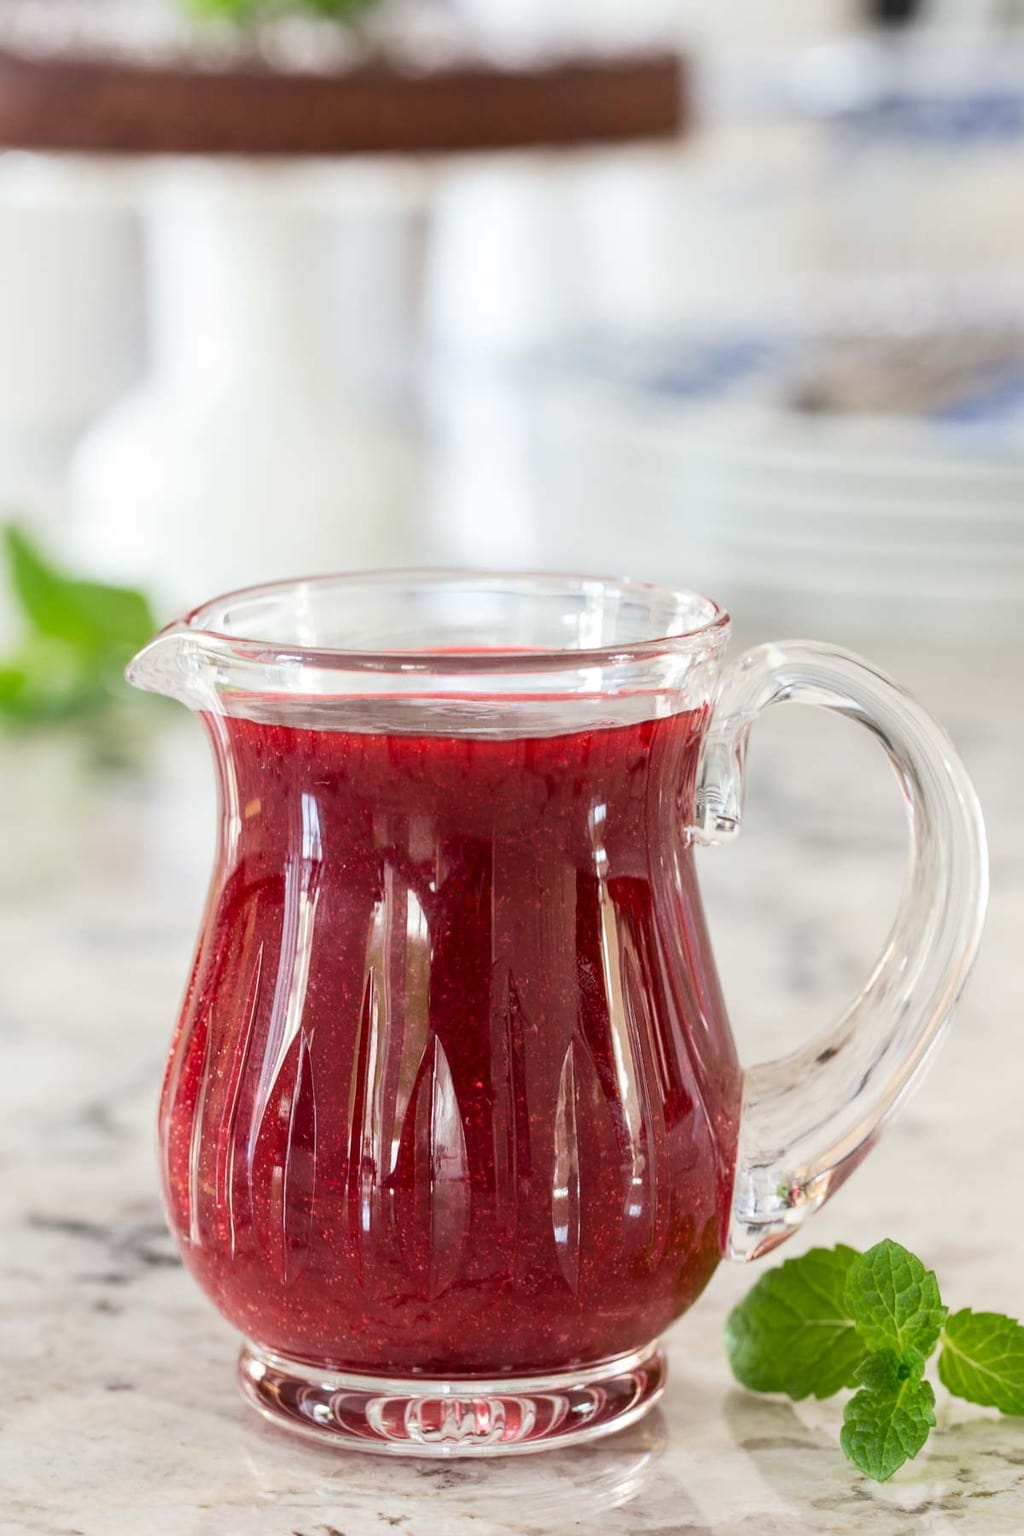 Photo of a glass pitcher filled with Easy Raspberry Coulis on a granite kitchen countertop.